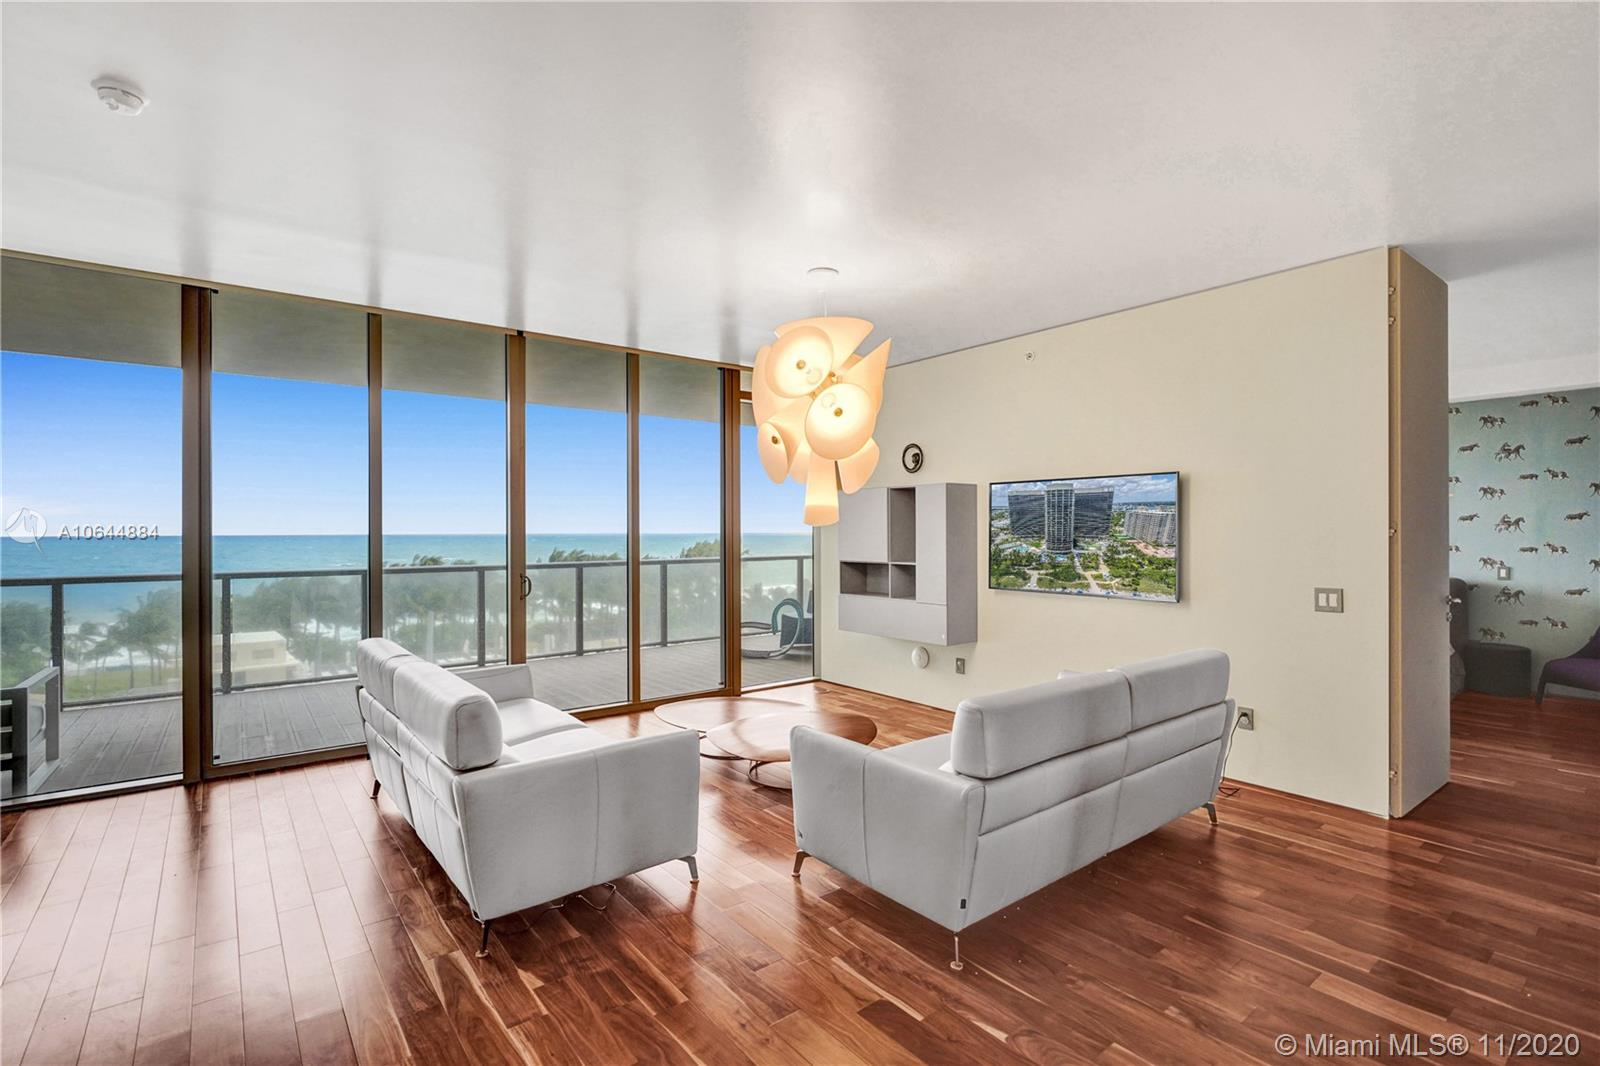 RARE TO FIND 4BED+DEN/4 FULL BATHS - ONE OF A KIND LUXURIOUS AND MODERN FLOW THROUGH OCEANFRONT RESIDENCE AT THE FIVE STAR ST REGIS BAL HABROUR WITH BREATHTAKING, UNOBSTRUCTED DIRECT OCEAN, INTRACOASTAL AND CITY VIEWS. THE PROFESSIONALLY DECORATED UNIT FEATURES: PRIVATE ELEVATOR AND FOYER, TROPICAL ACACIA WOOD FLOOR, FINE CONTEMPORARY FURNITURE. BEACH SERVICE, POOLS, JACUZZI, SPA, RESTAURANTS, GYM, PRIVATE CONCIERGE, KIDS ROOM, SPACIOUS TERRITORRY. Right across the street from Bal Harhour Shops.